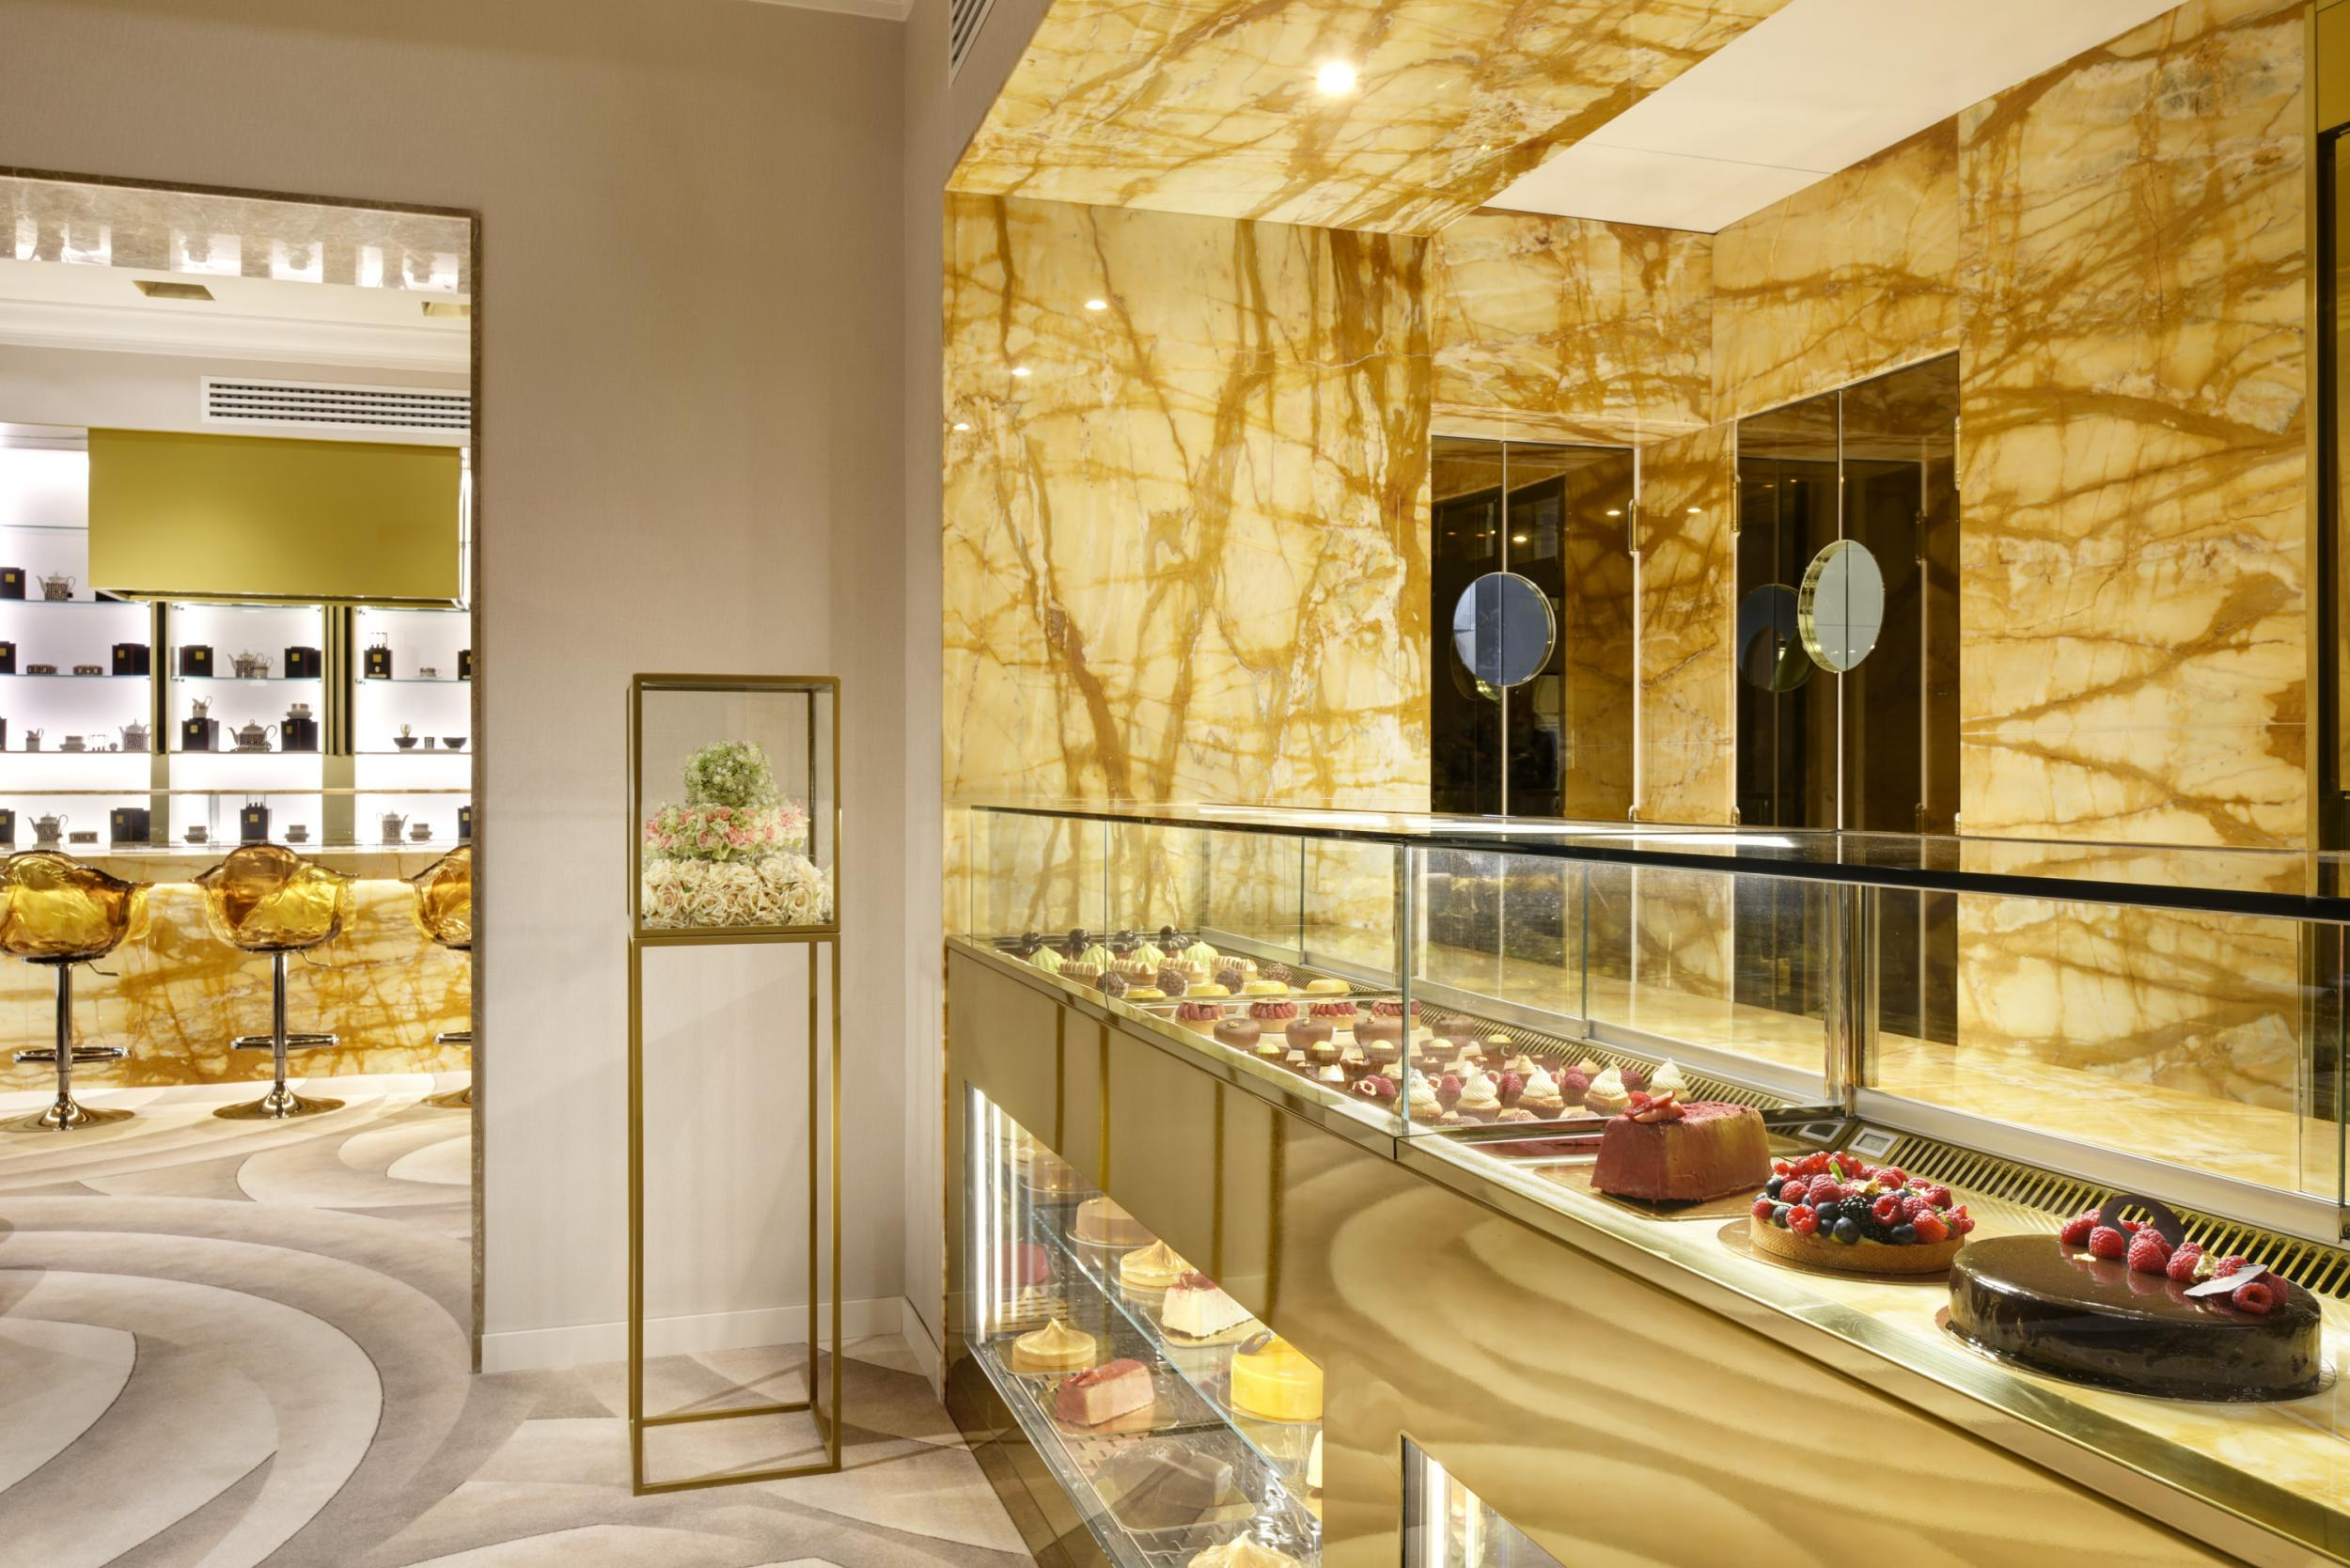 First Roma Dolce review: Rome's new patisserie-themed hotel is just as sweet as you'd imagine